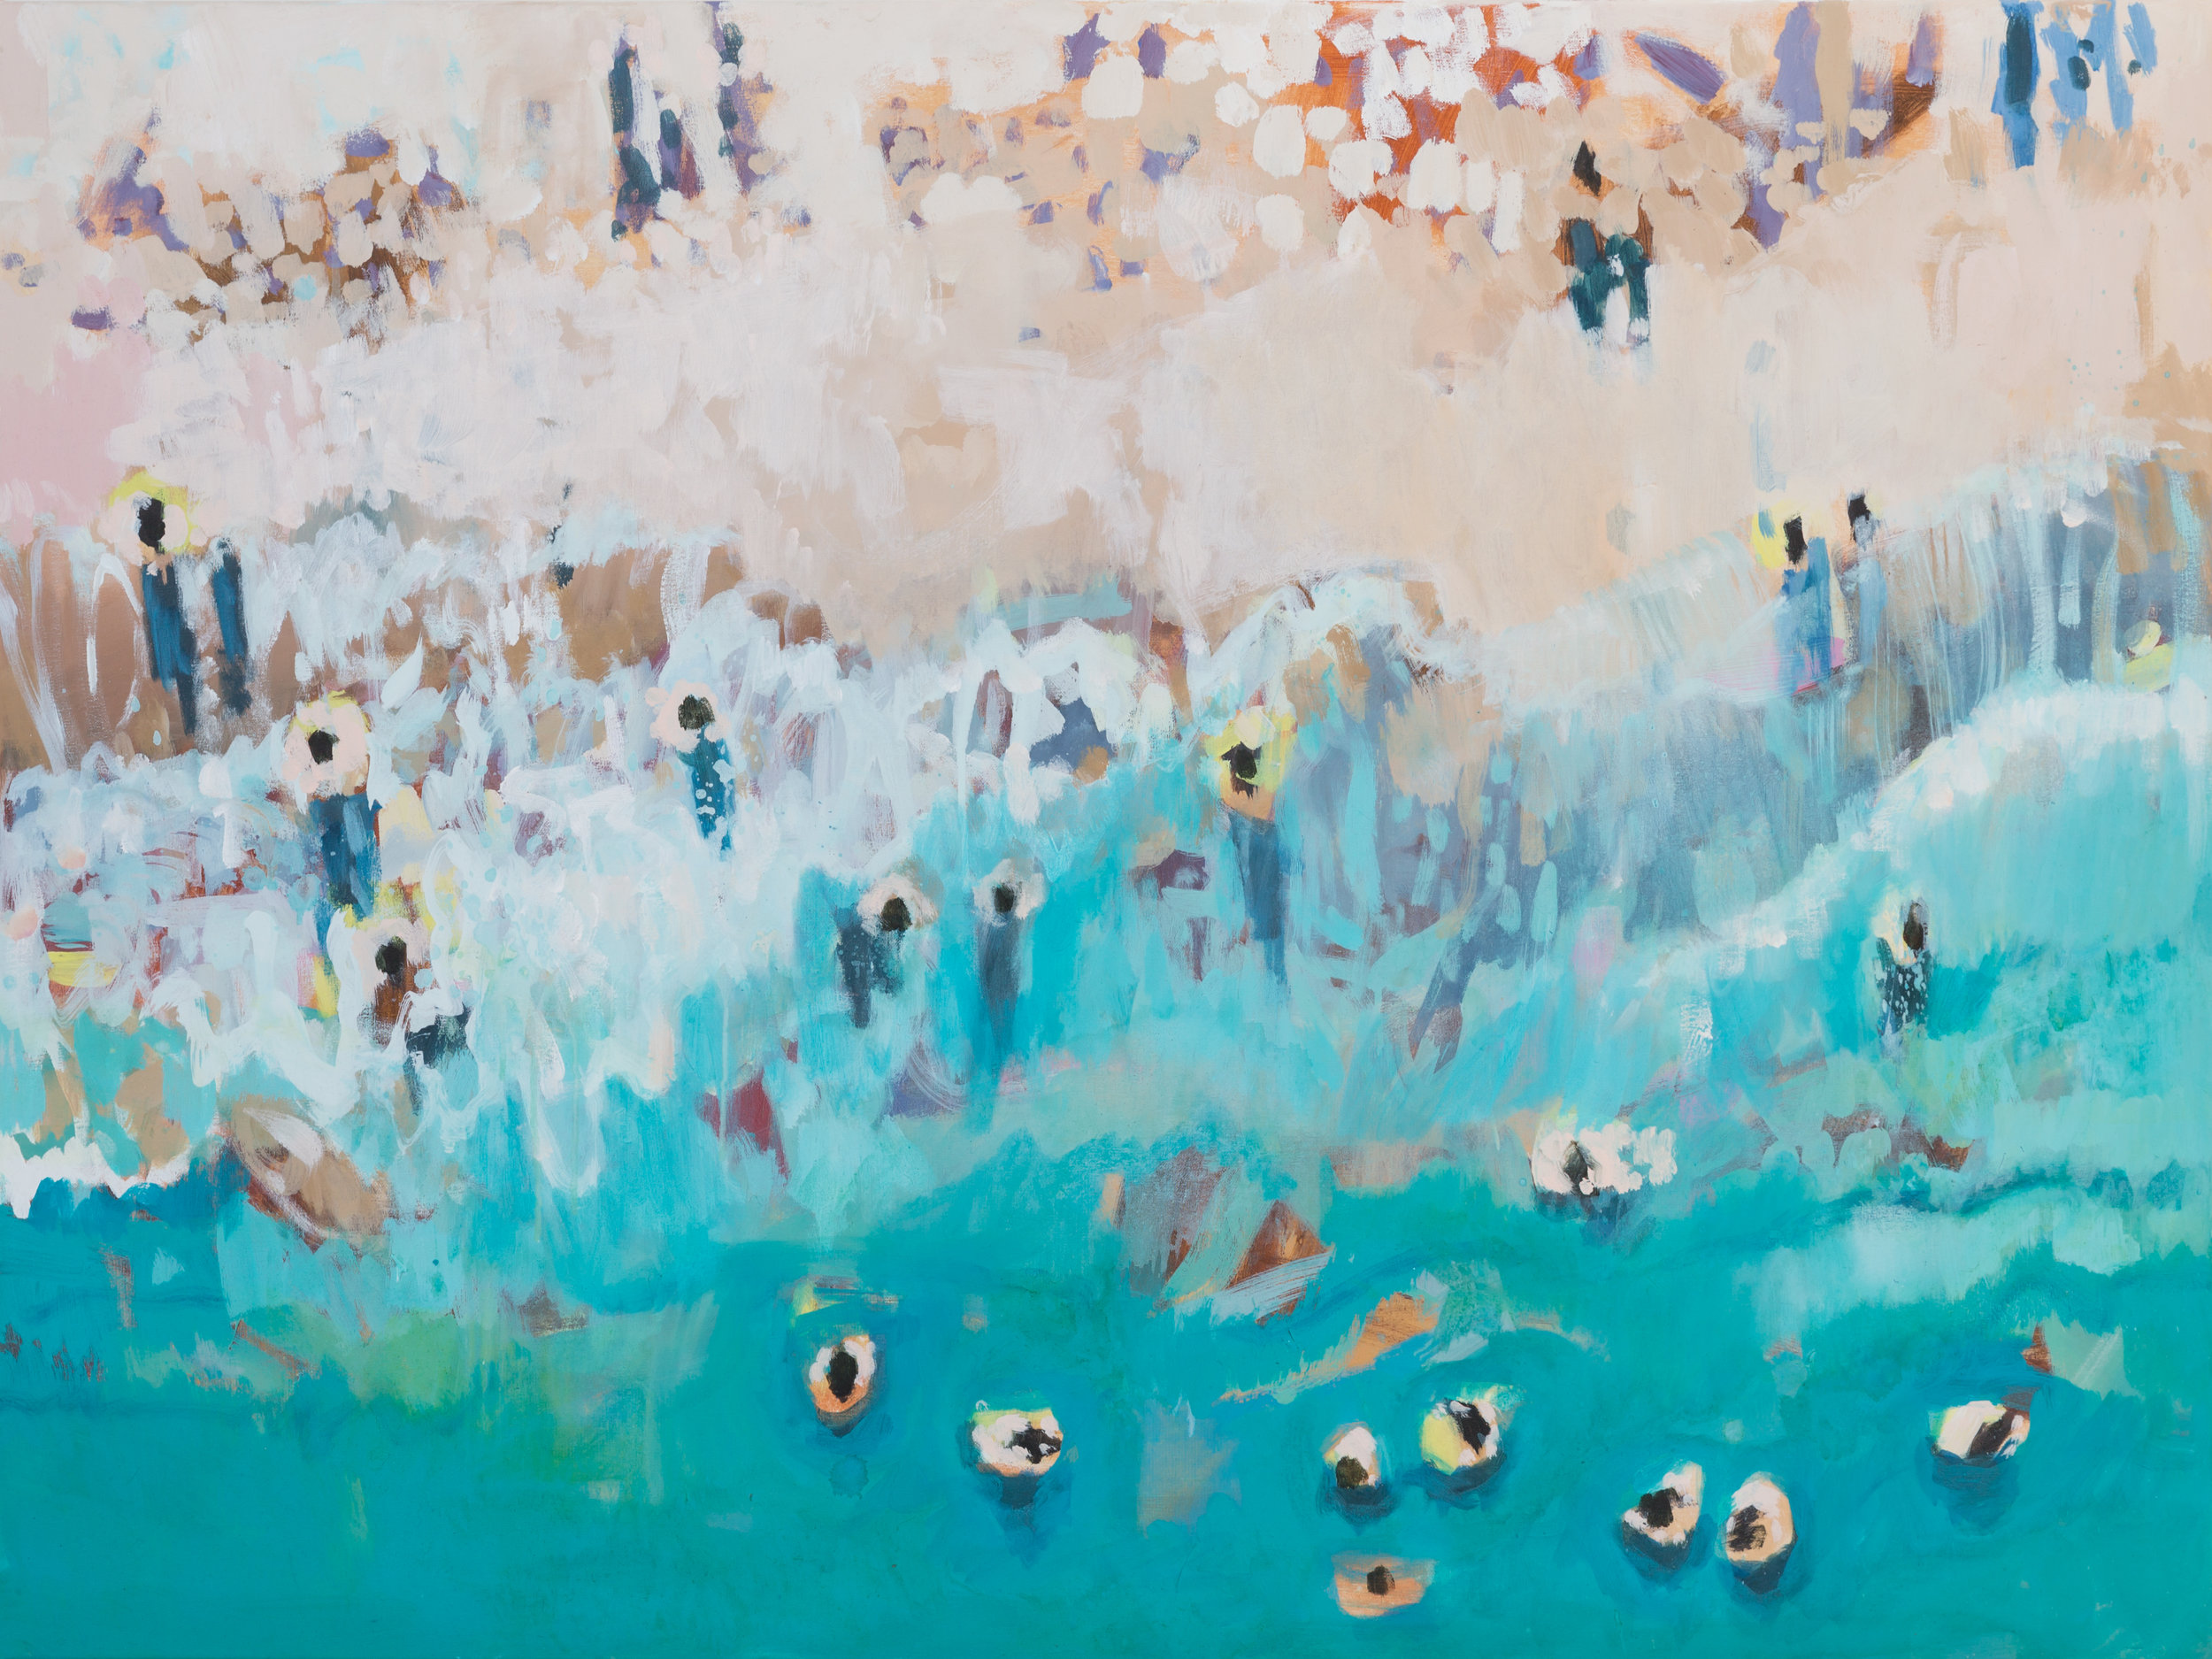 Nina Brooke | Beach Life Limited Edition Giclee Print  75 x 100 cm £400 90 x 120 cm £500  Edition of 60  Each print is accompanied by a signed certificate of authenticity